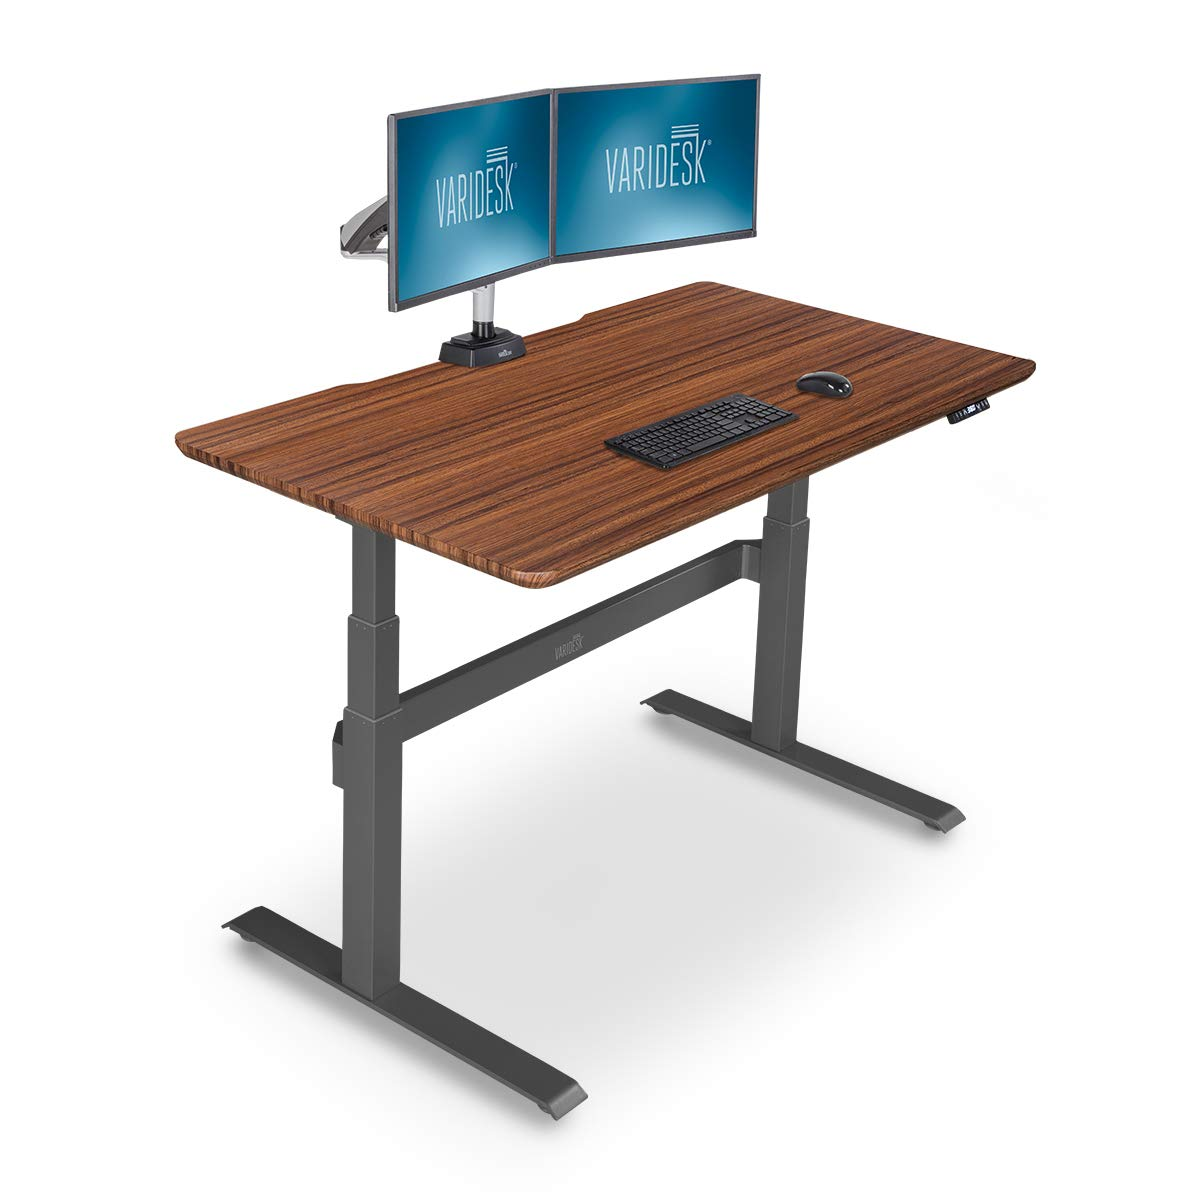 VARIDESK - Full Electric Desk - PRODESK 60 Electric Darkwood- 3-Button Memory Settings by VARIDESK